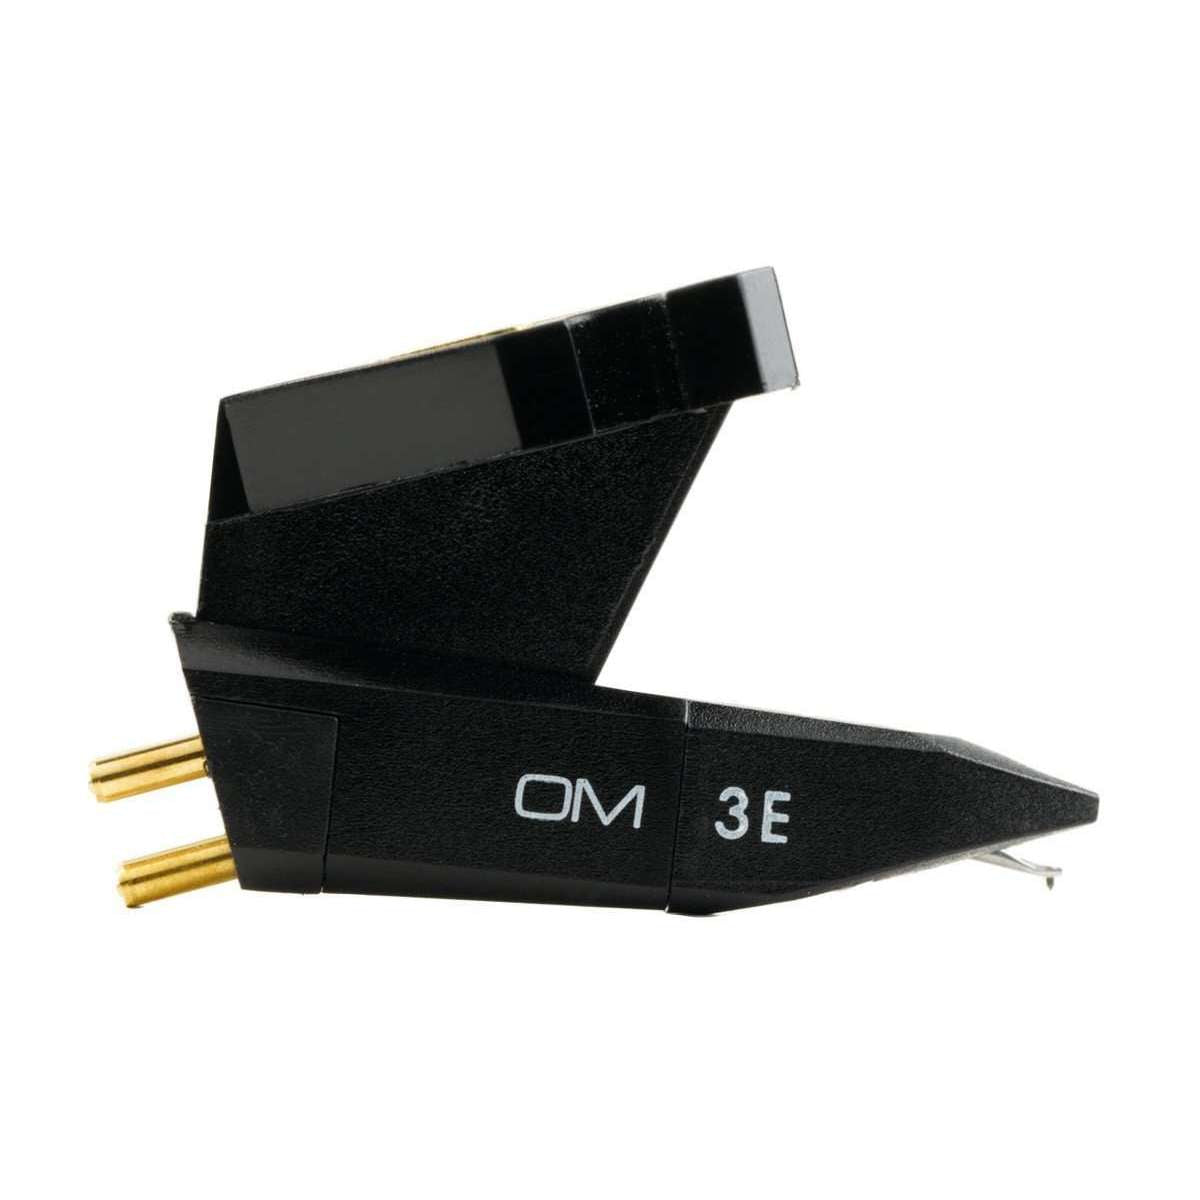 Ortofon OM3e Moving Magnet Cartridge - Call SpatialOnline 0345 557 7334